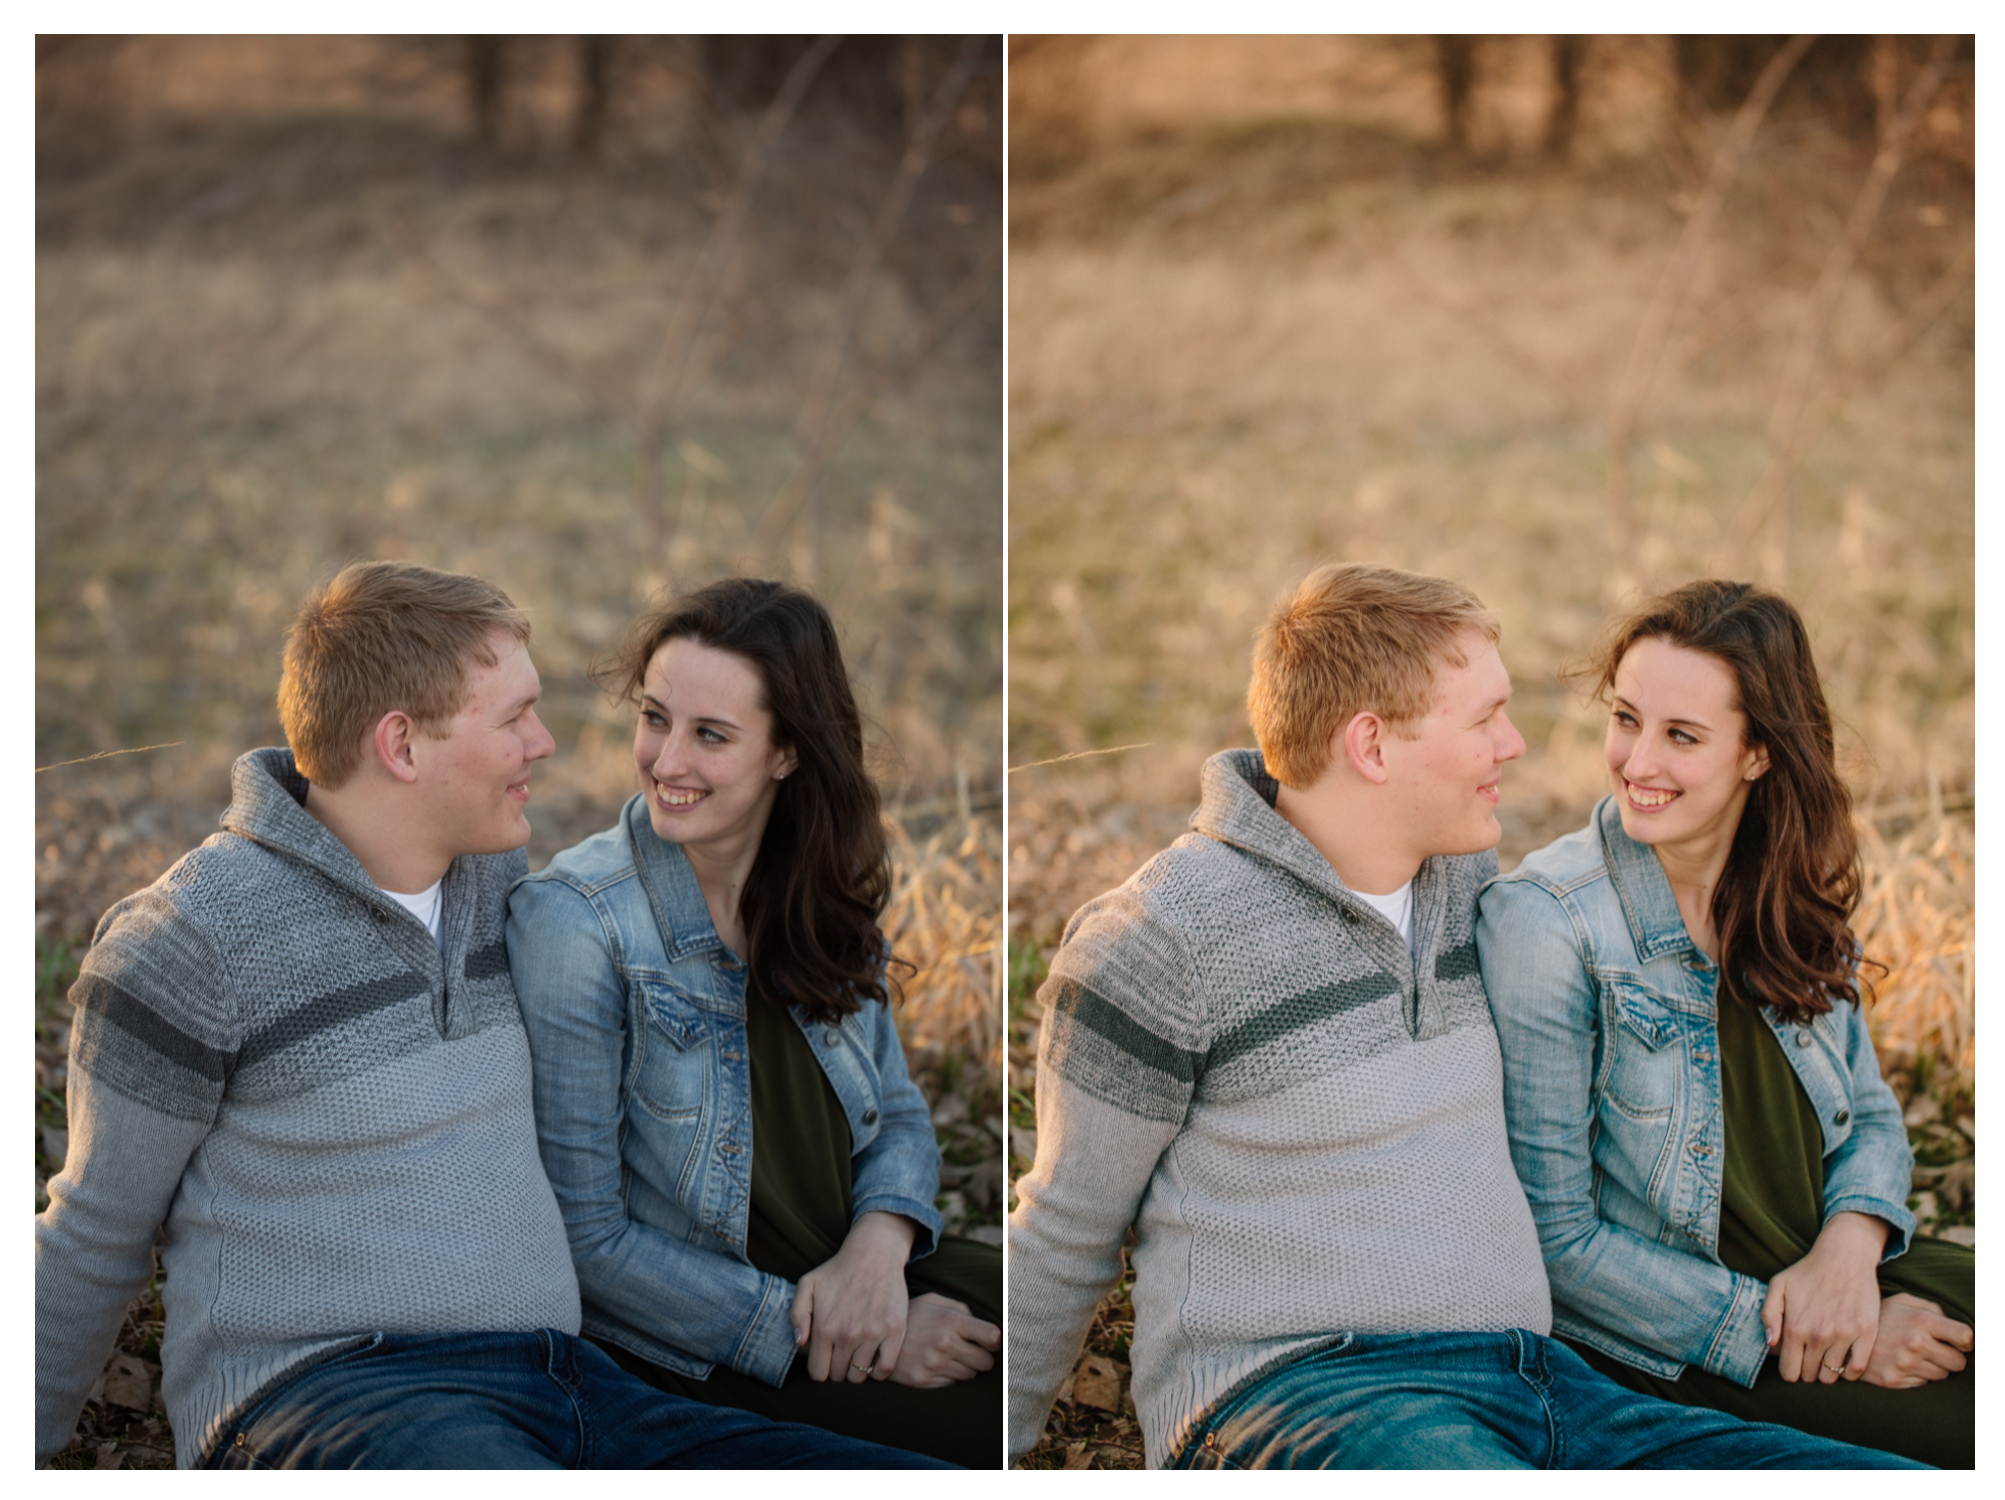 before and after photography edits